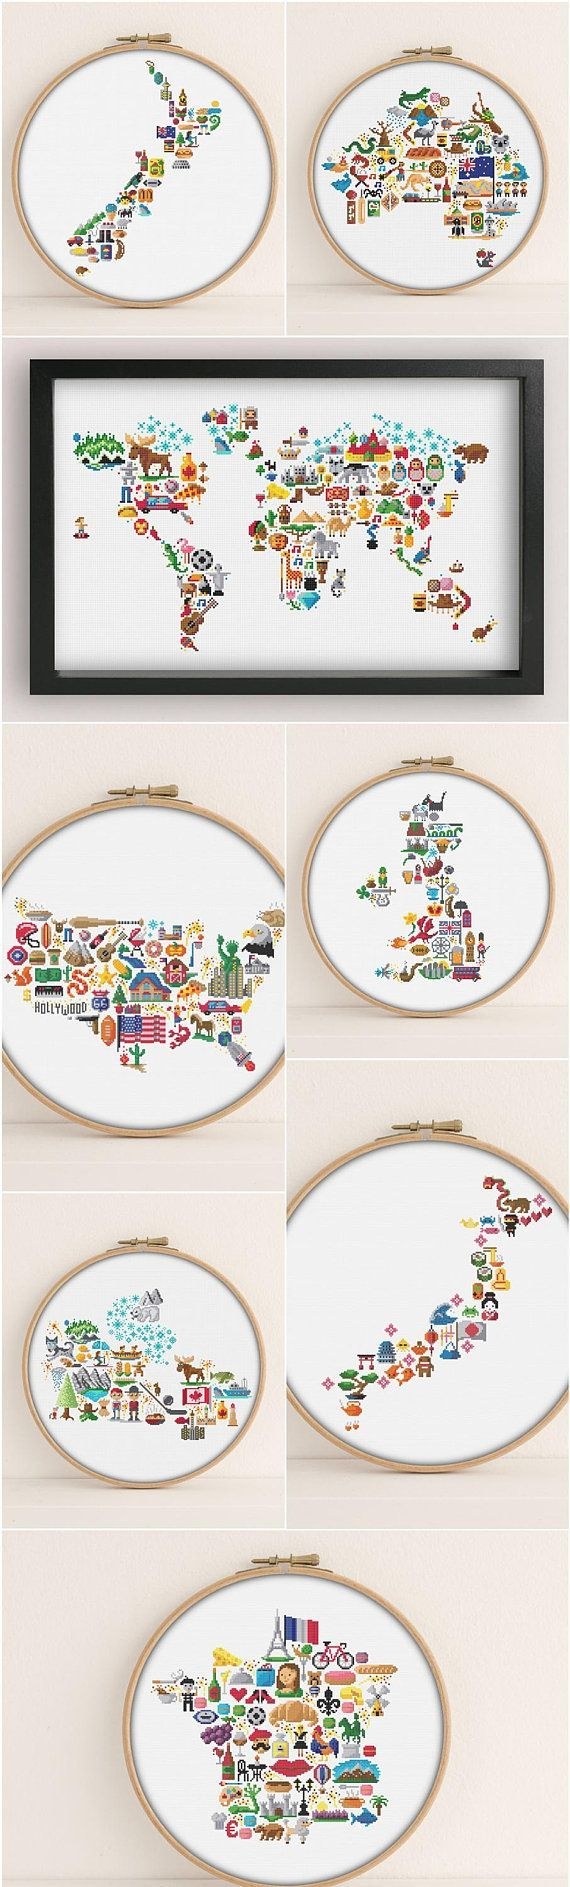 Photo of Set of 7 Maps & 1 World Map cross stitch patterns – PDF Pattern – United Kingdom – America – Australia – New Zealand / Japan / Canada / USA